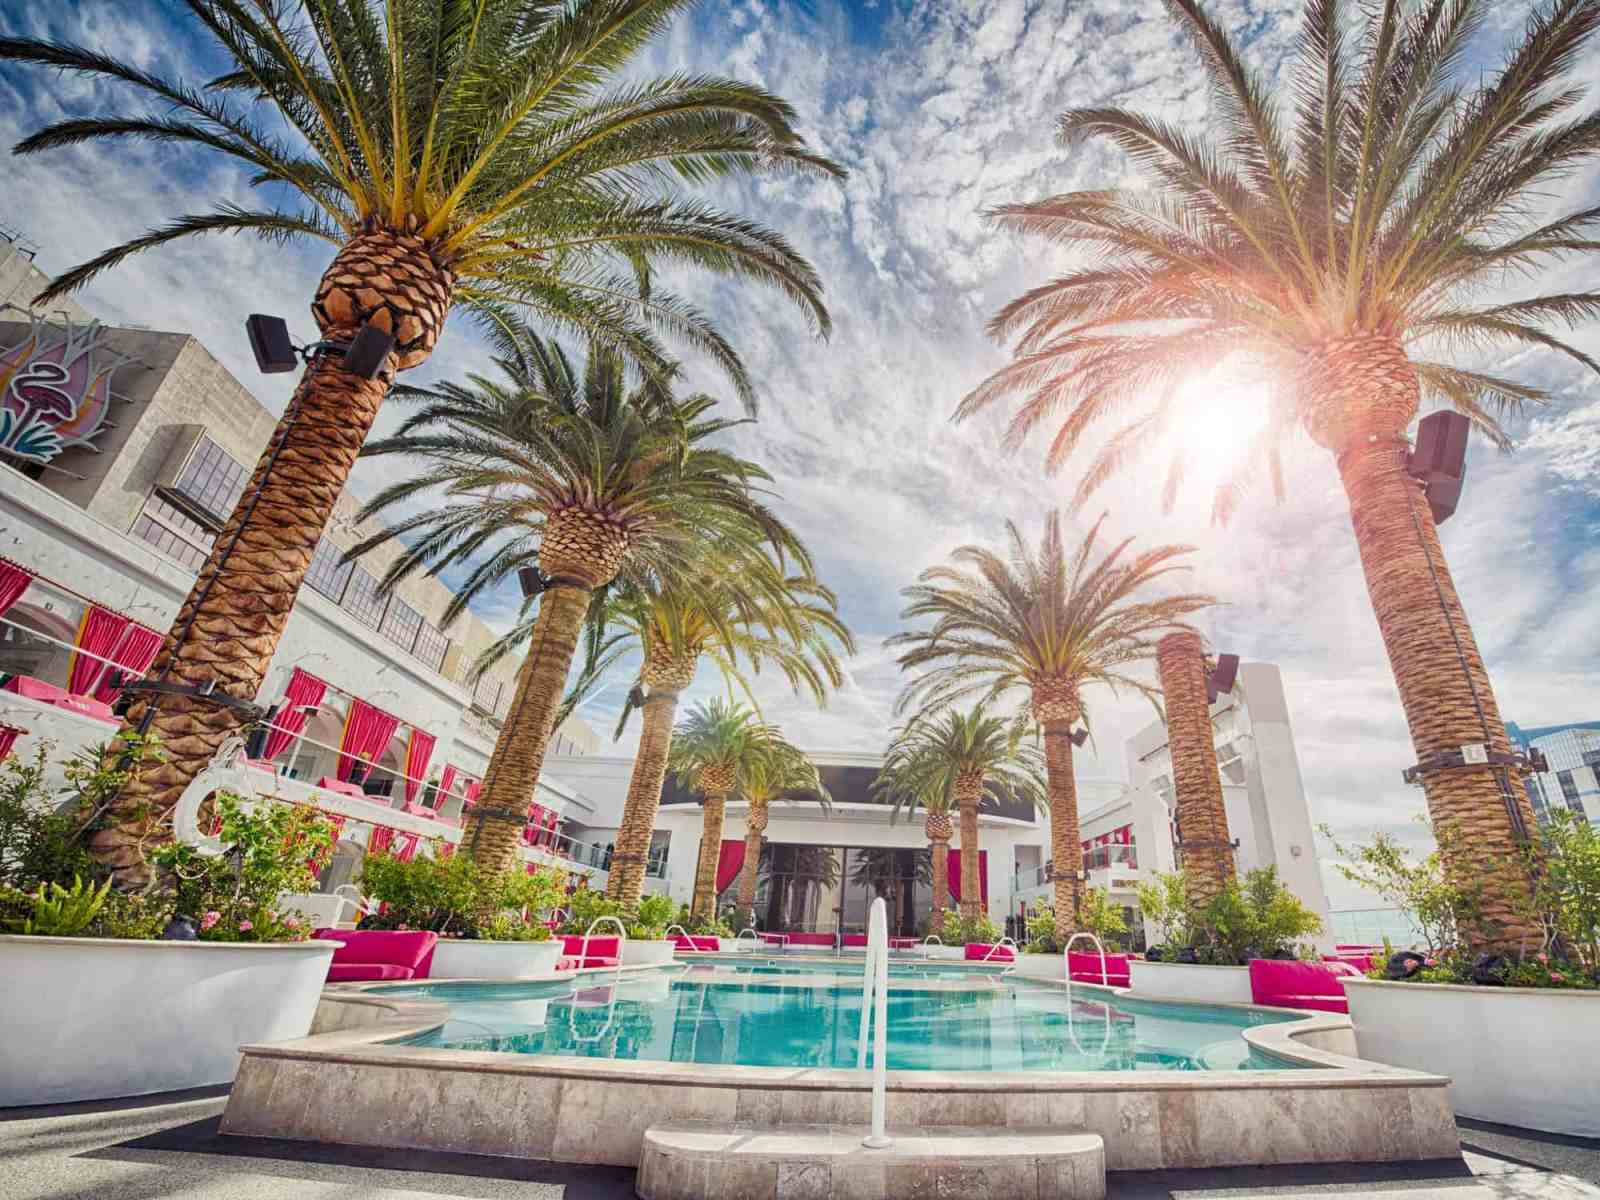 A trip to Vegas is something that needs a lot of planning in advance! Here is the guide to making sure your vacation goes according to plan!